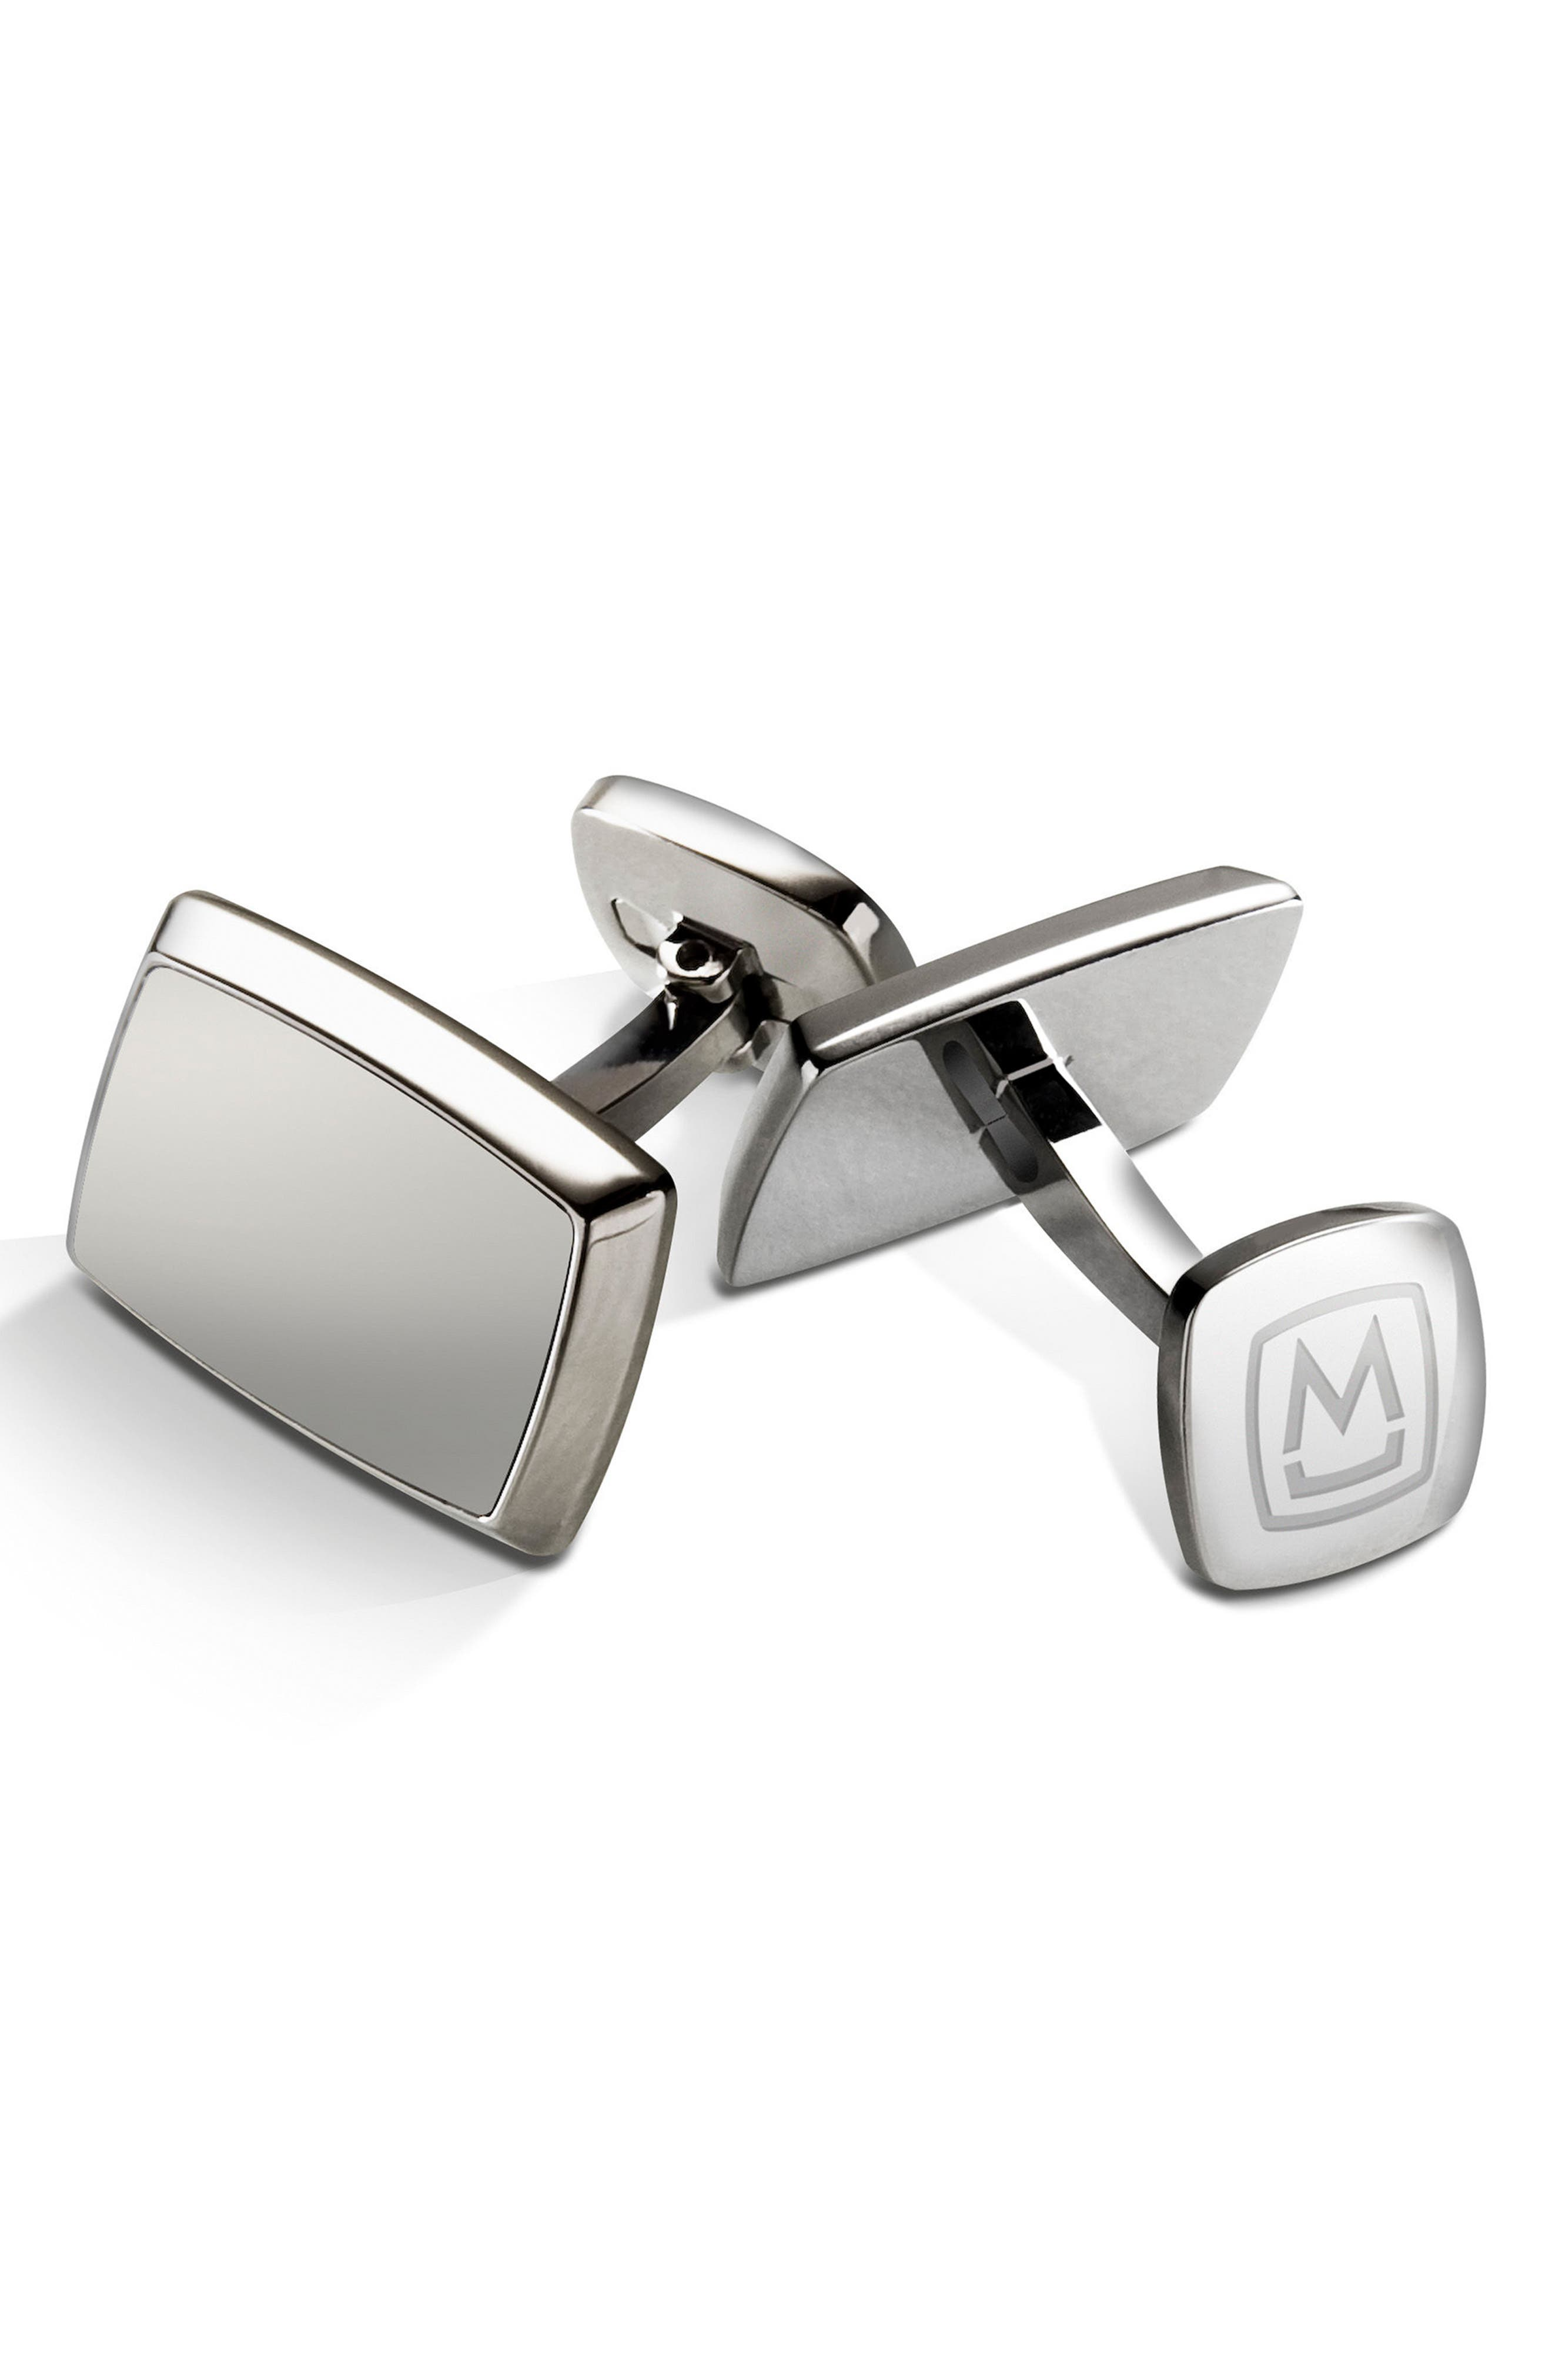 M-Clip Stainless Steel Cuff Links,                         Main,                         color, Silver